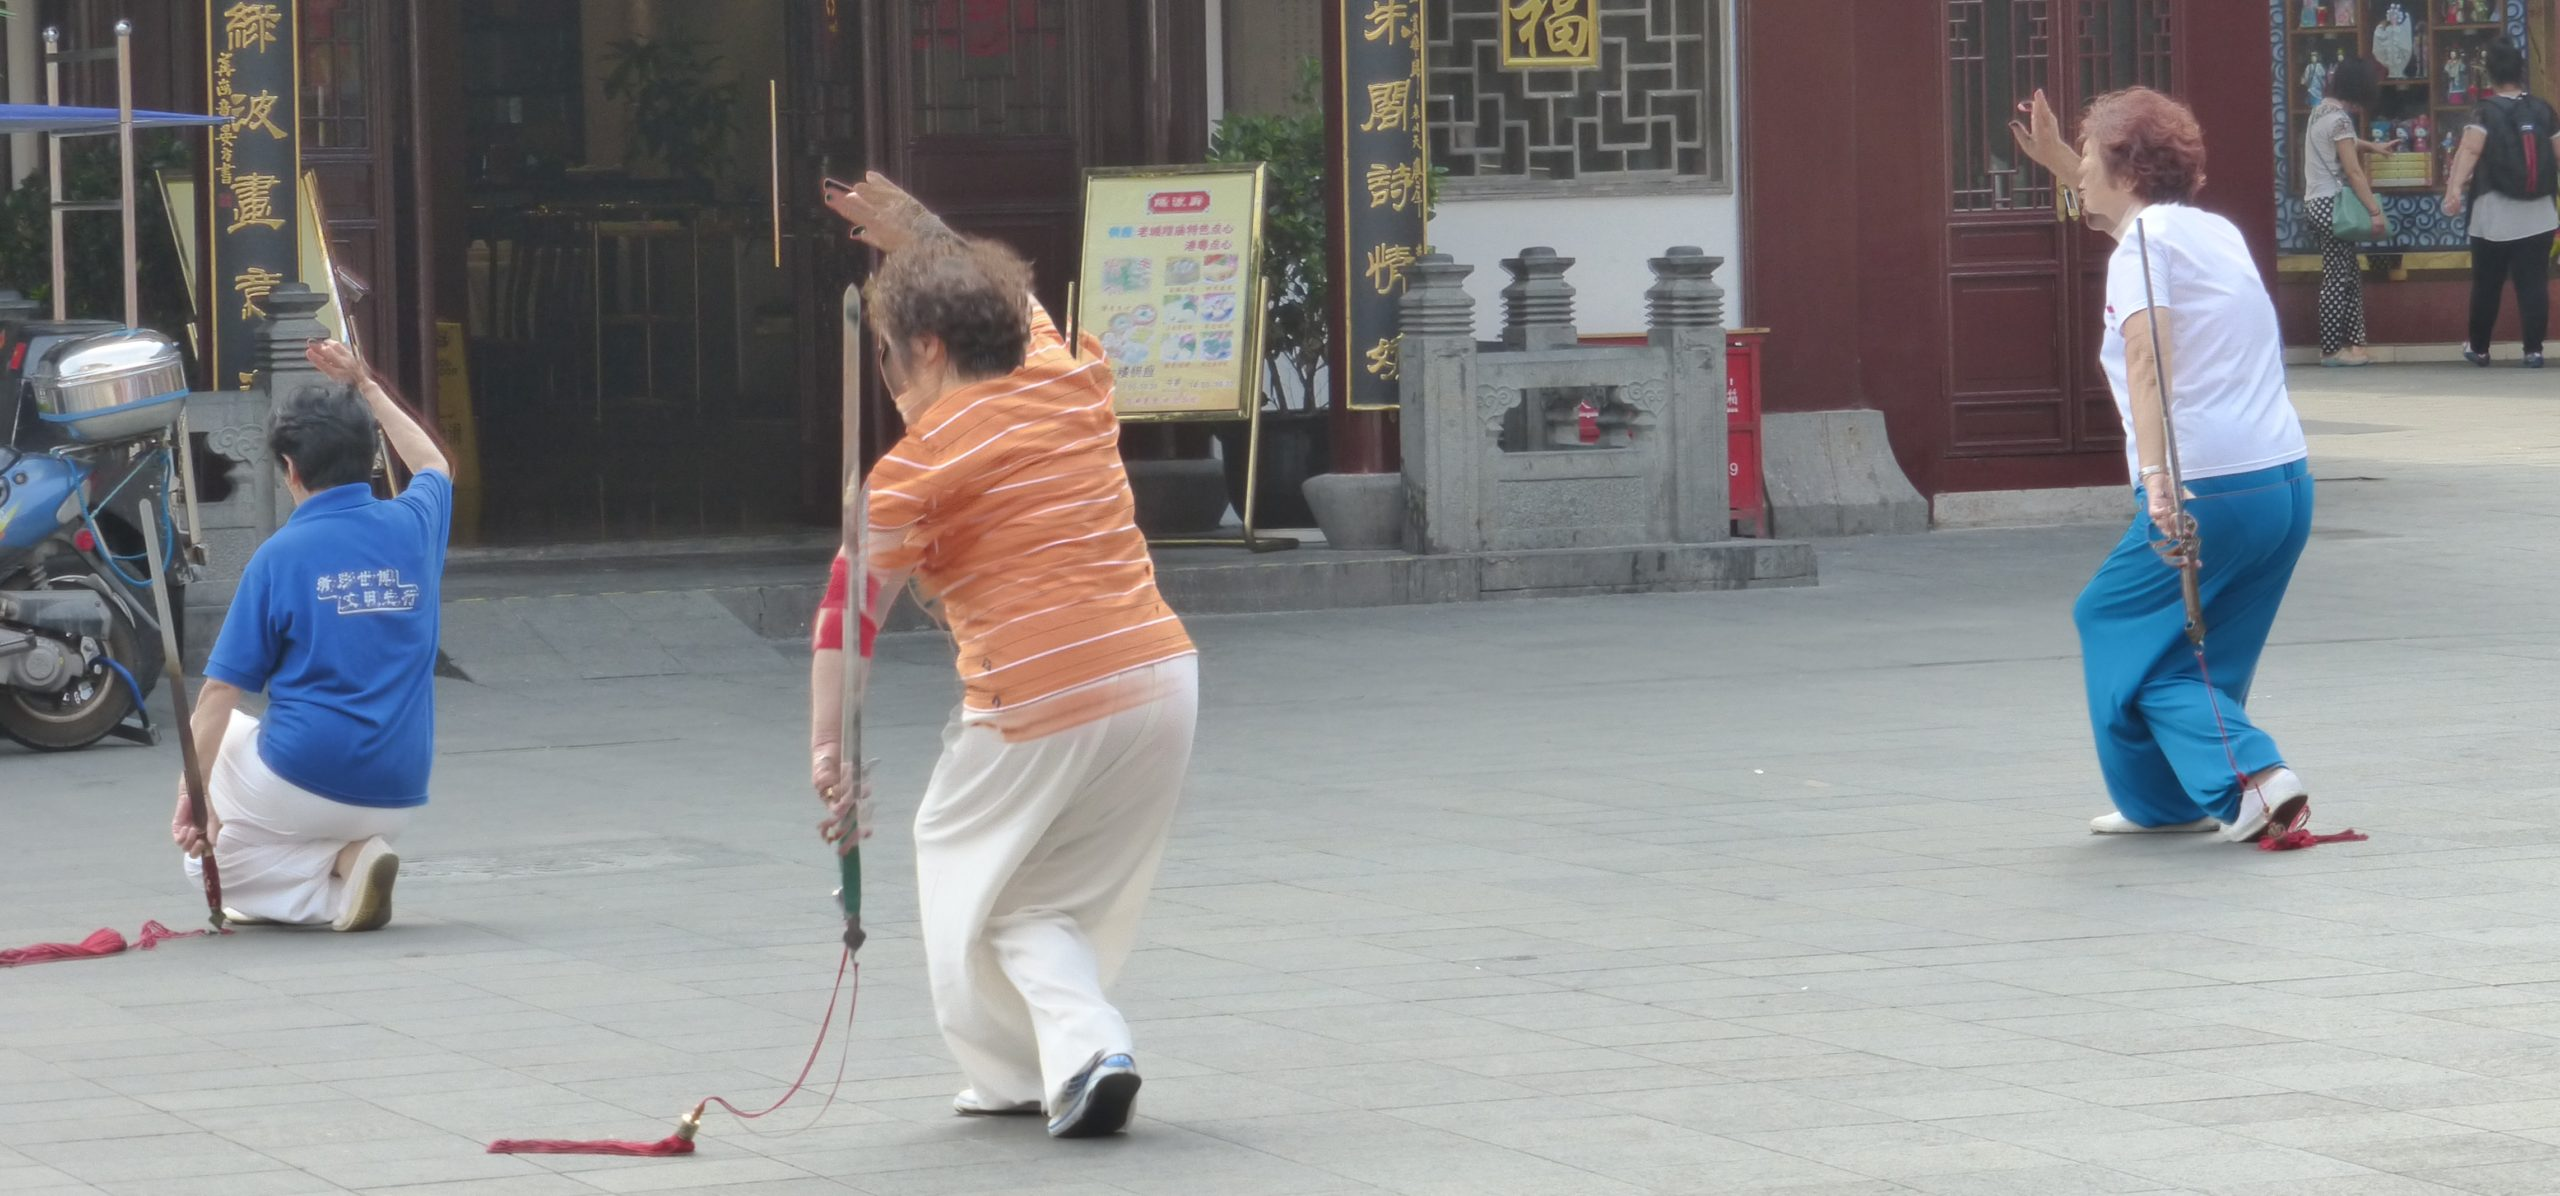 tai chi fitness in a park in China